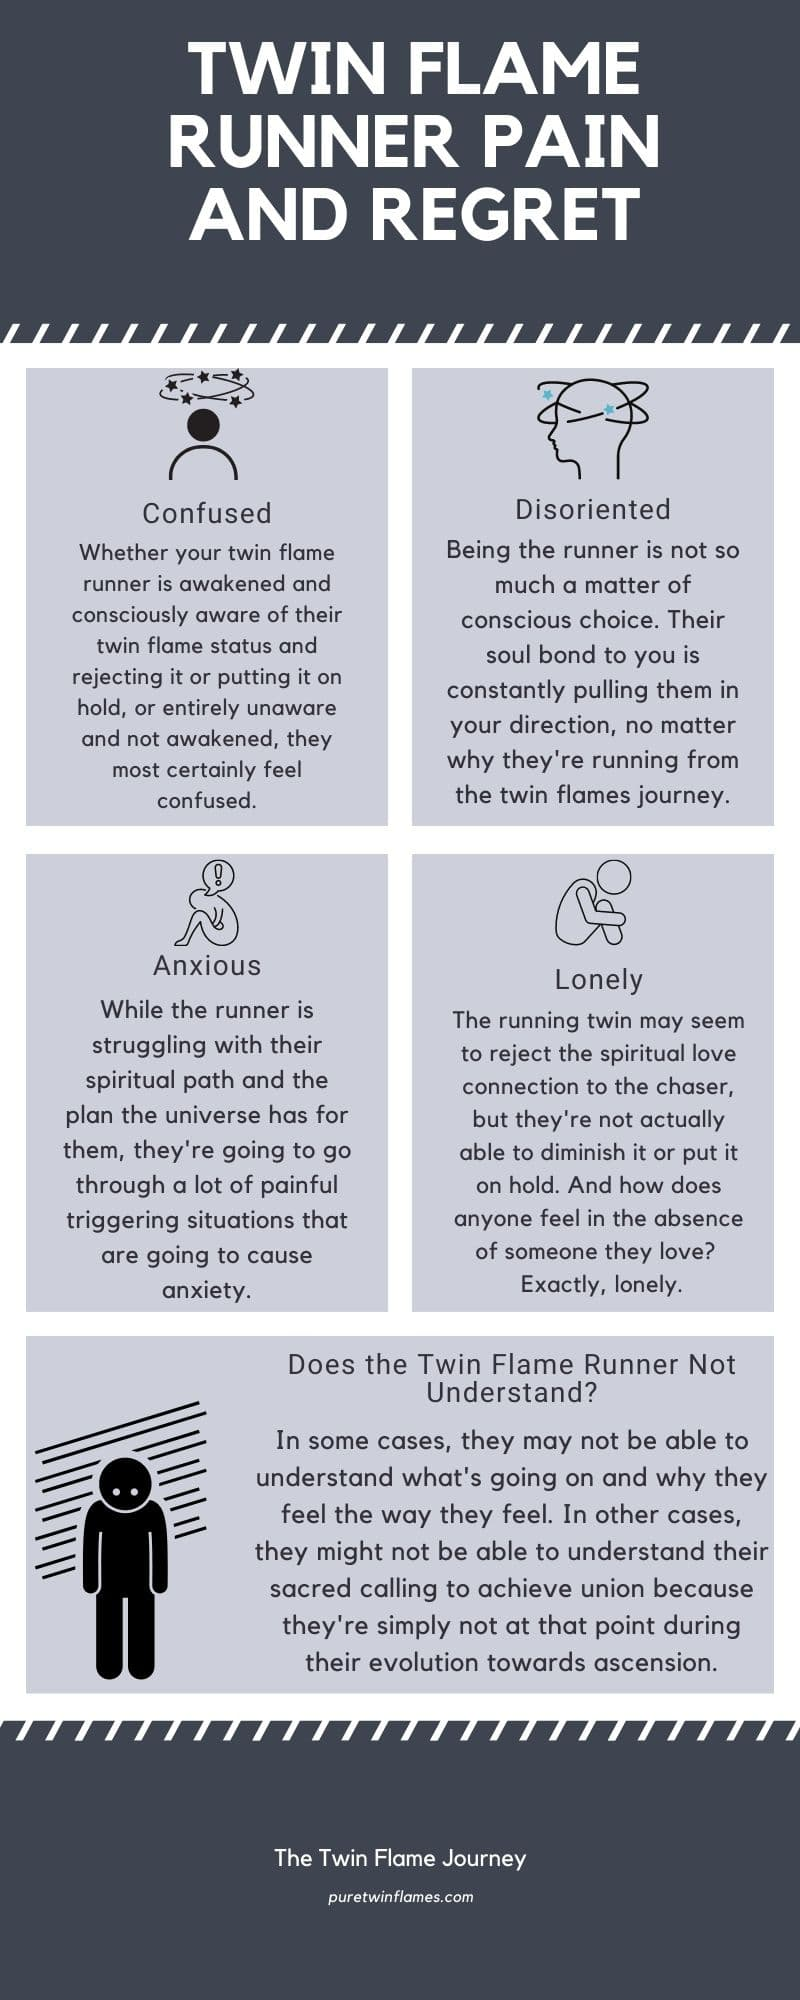 Twin Flame Runner Pain and Regret Infographic